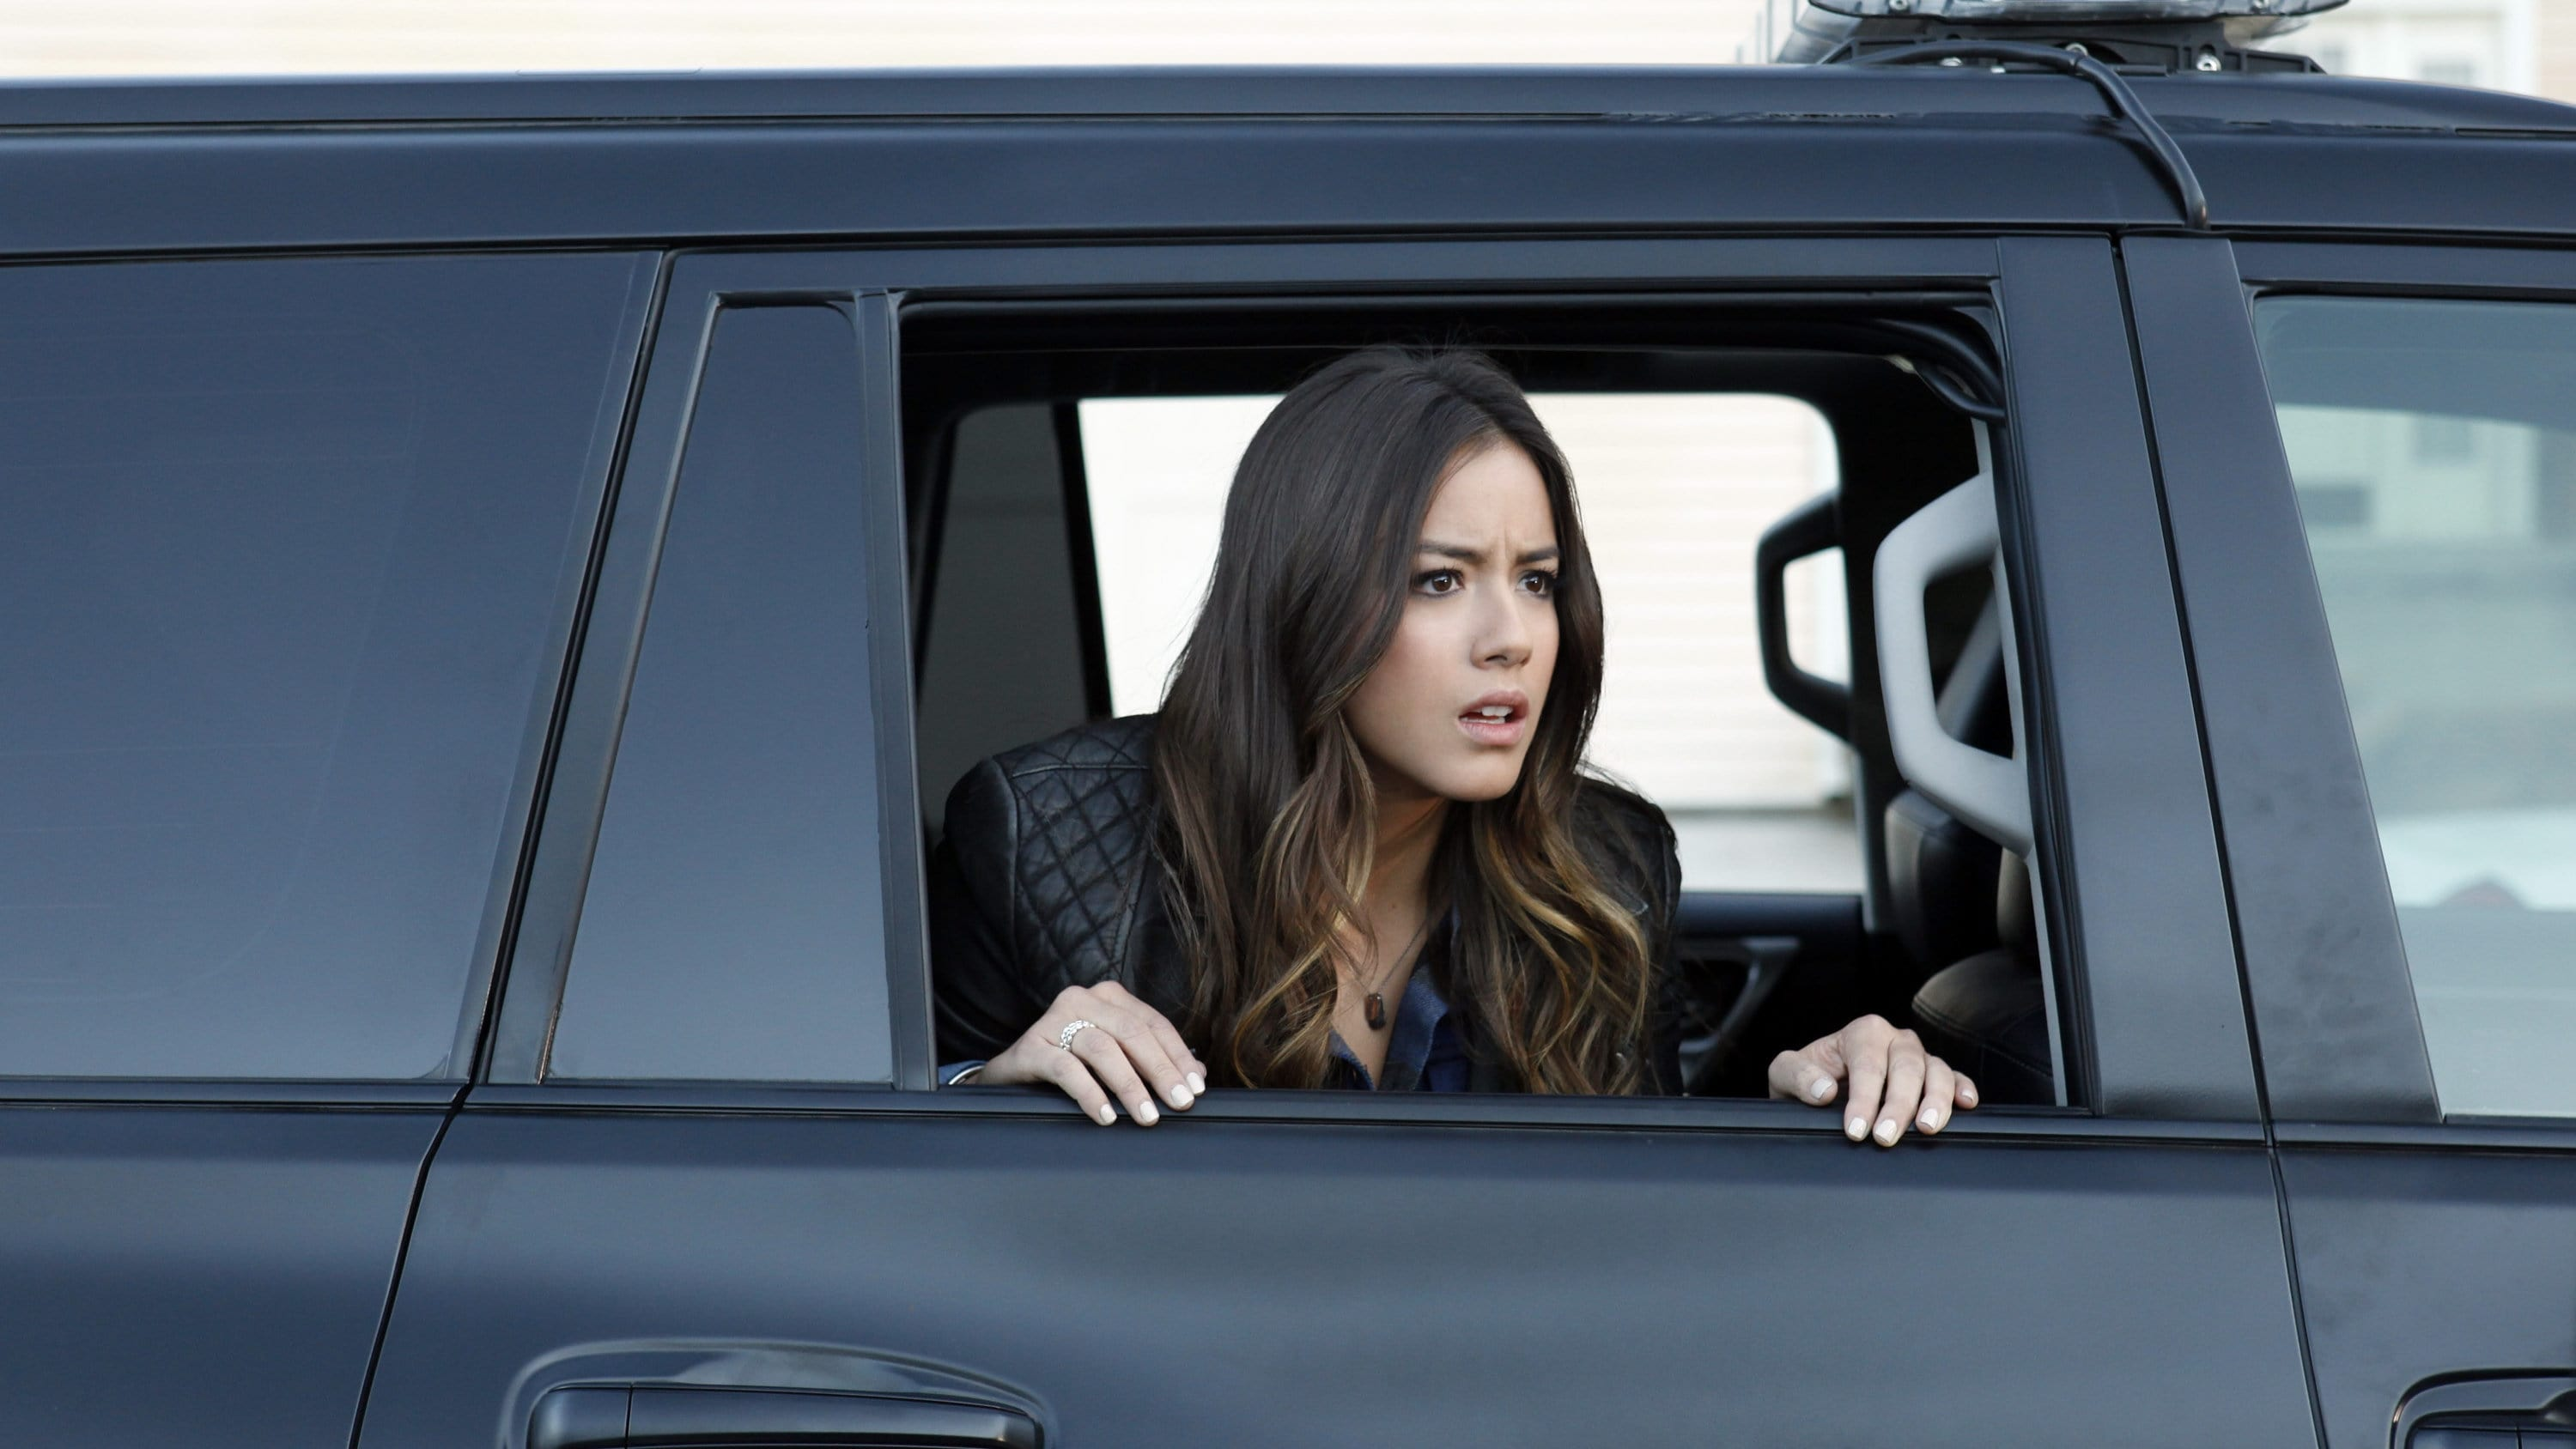 Marvel's Agents of S.H.I.E.L.D. Season 1 :Episode 9  Der Geist in der Maschine